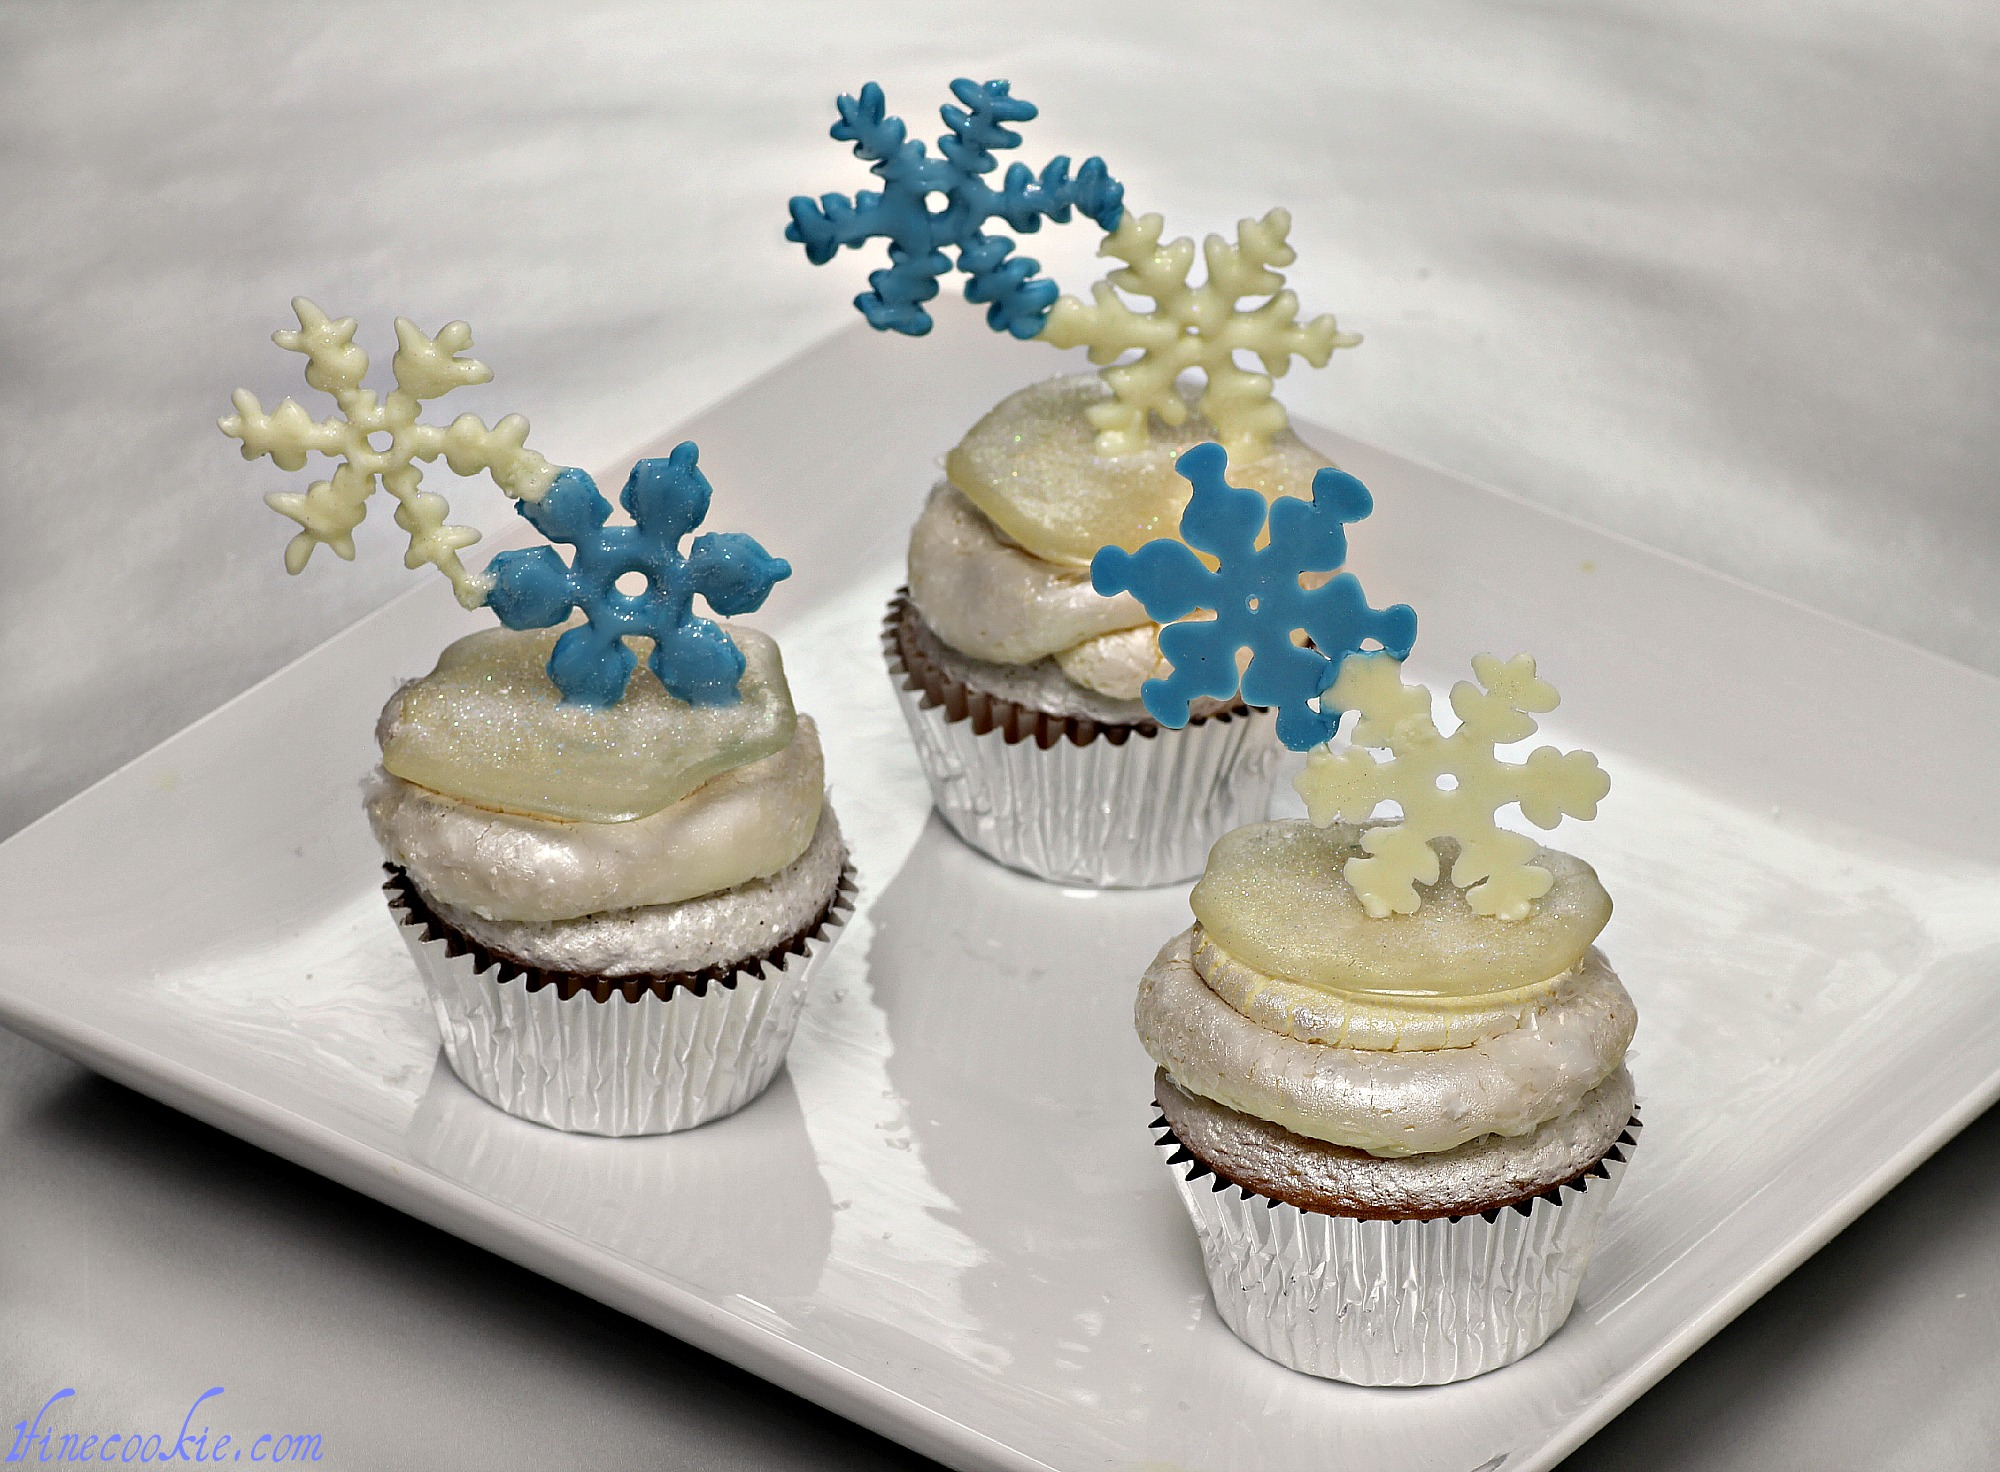 Winter Wonderland Cupcakes Happy Christmukkah Or